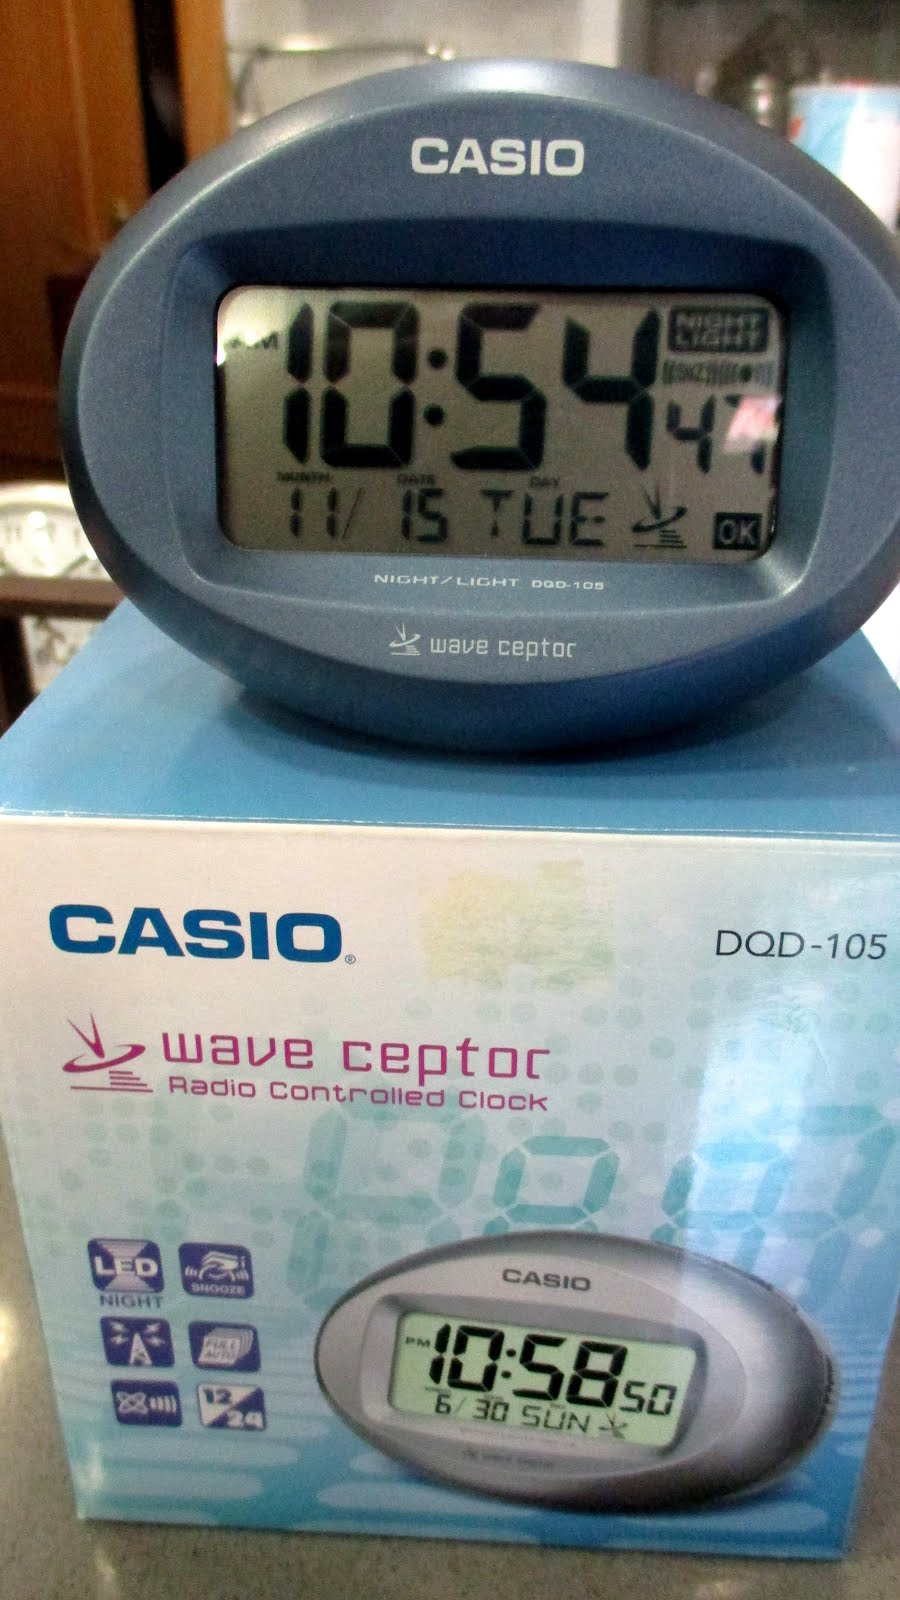 Despertador digital Casio, calendario, fecha, hora normal controlada por radio